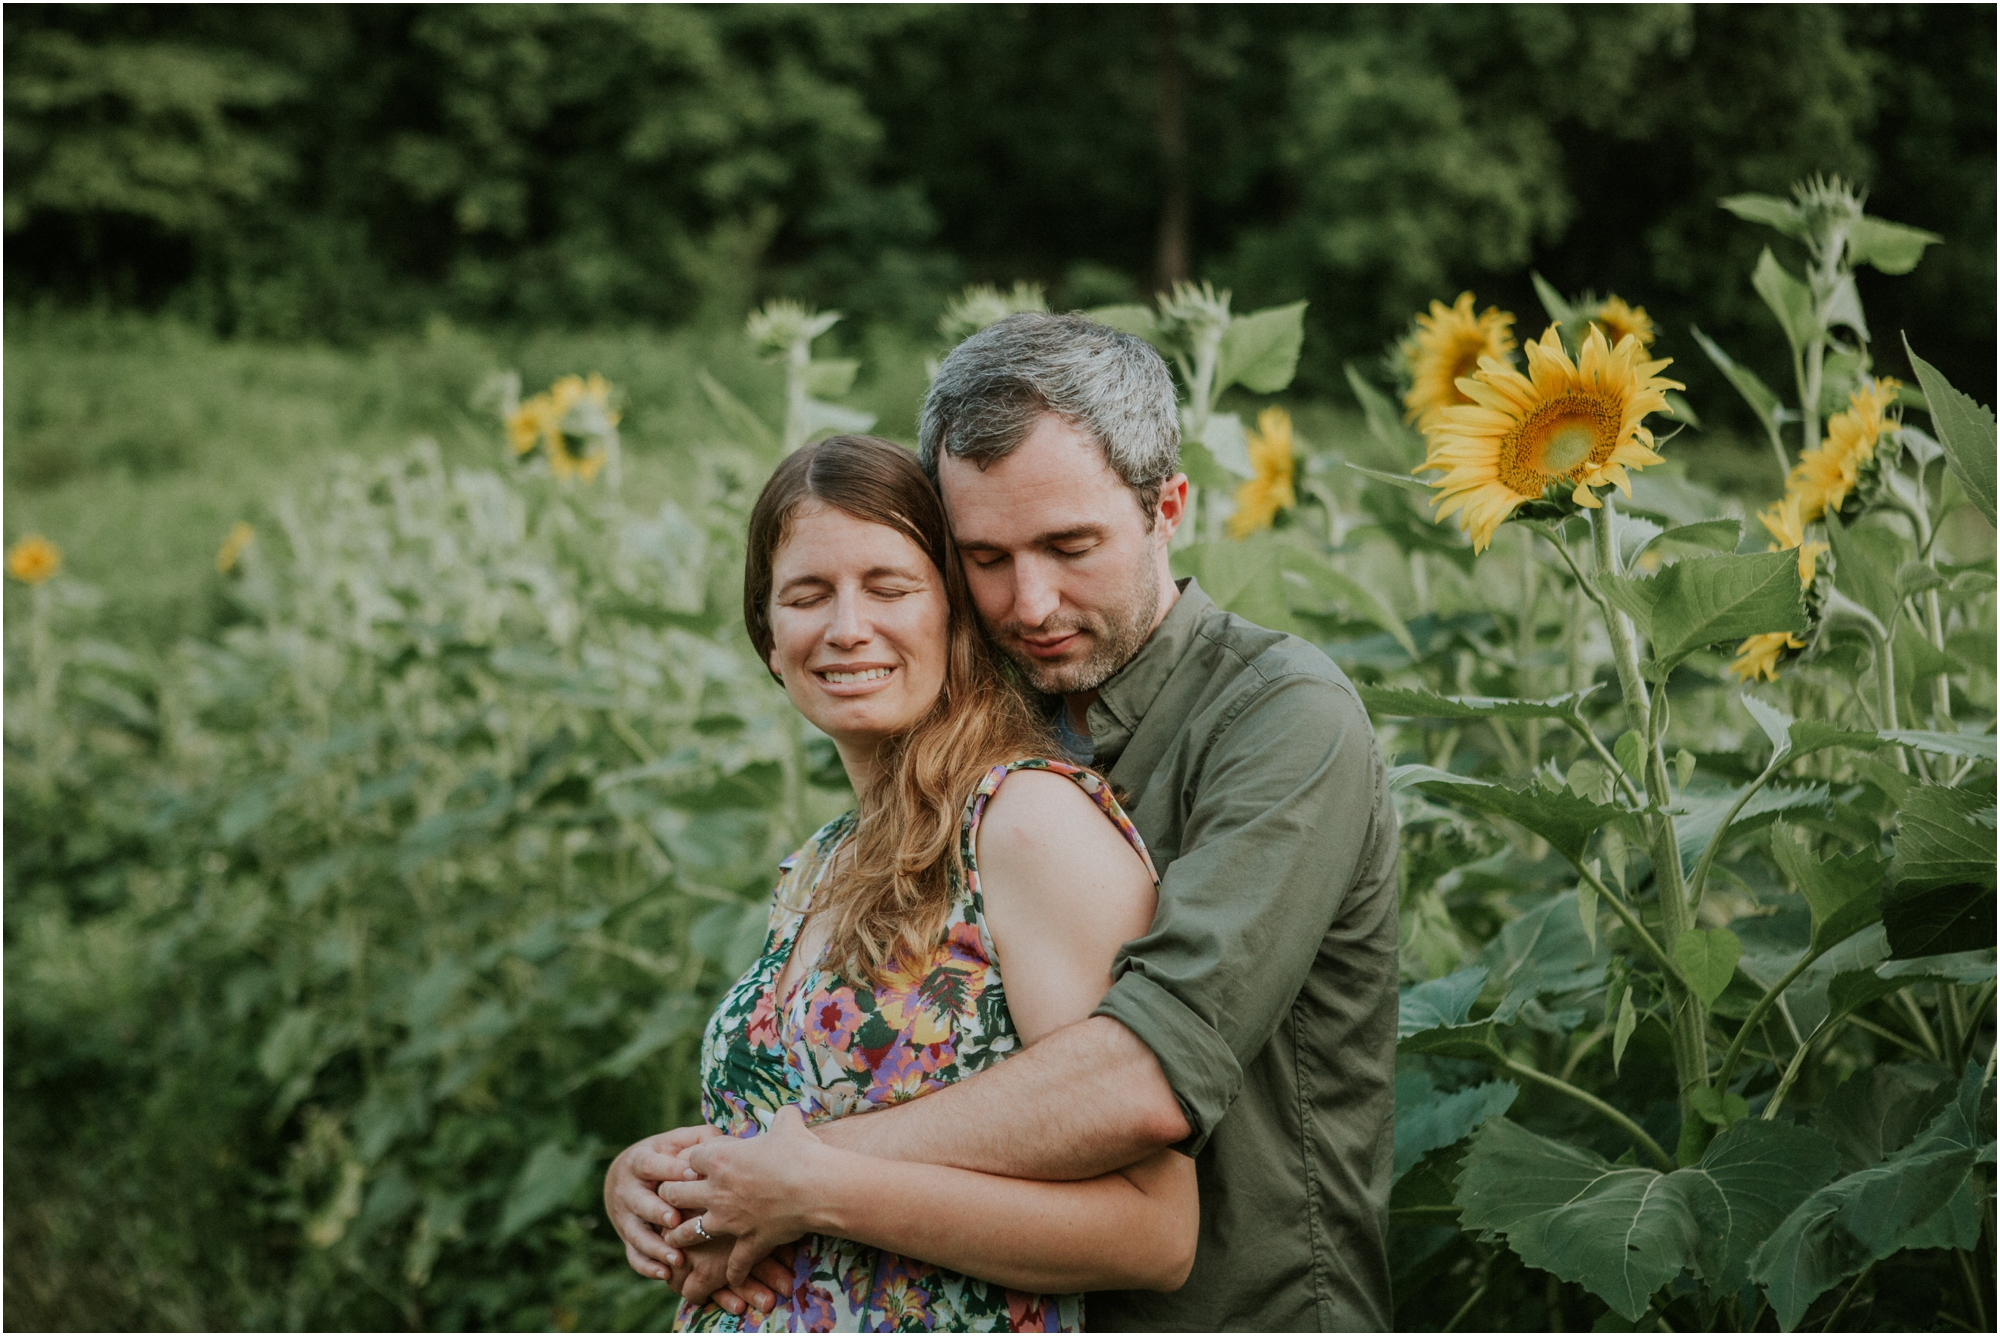 meads-quarry-ijams-nature-center-knoxville-tennessee-engagement-session-summer-northeast-tn-adventurous-outdoors-lake-katy-sergent_0038.jpg